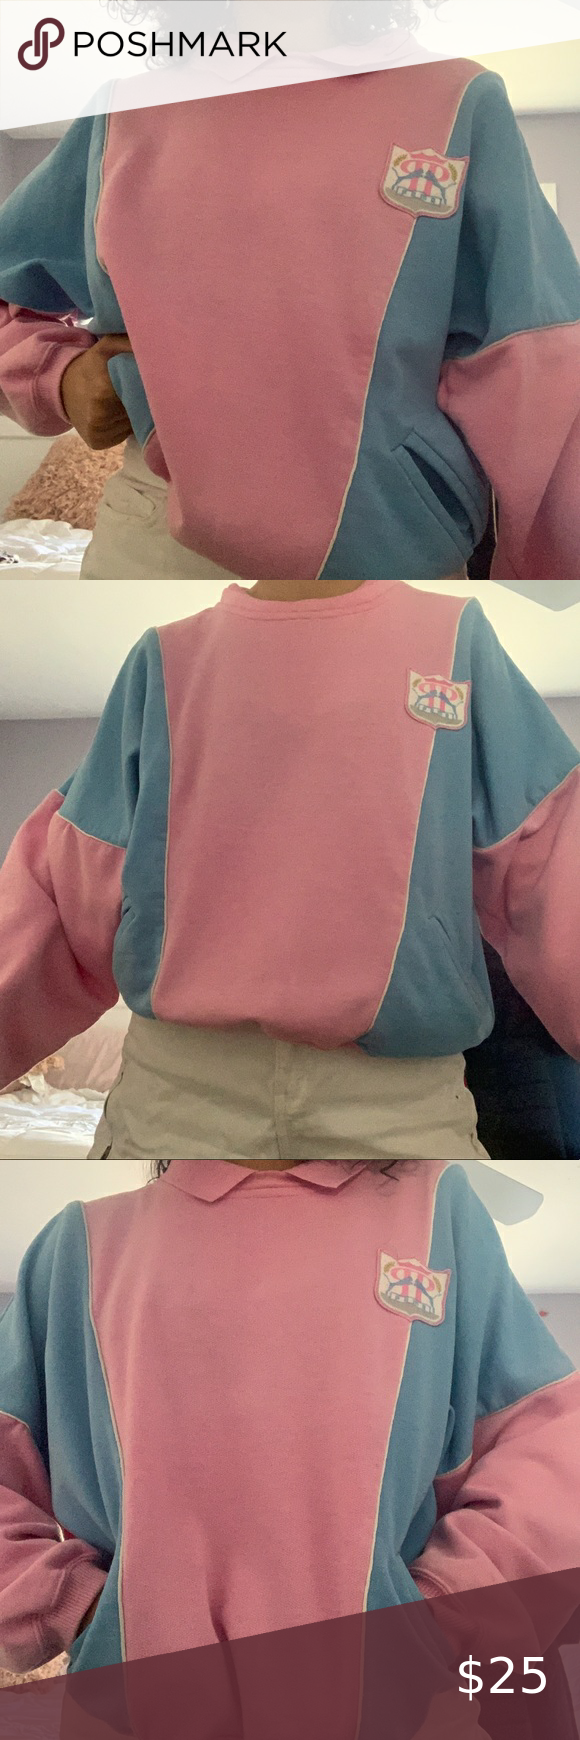 Filosófico santo Viaje  Pink & Blue Puma Collared Sweater - Cute Puma sweater, lightweight - pink &  blue - collared crewneck that can be tucked in… | Collar sweater, Blue pumas,  Pink blue